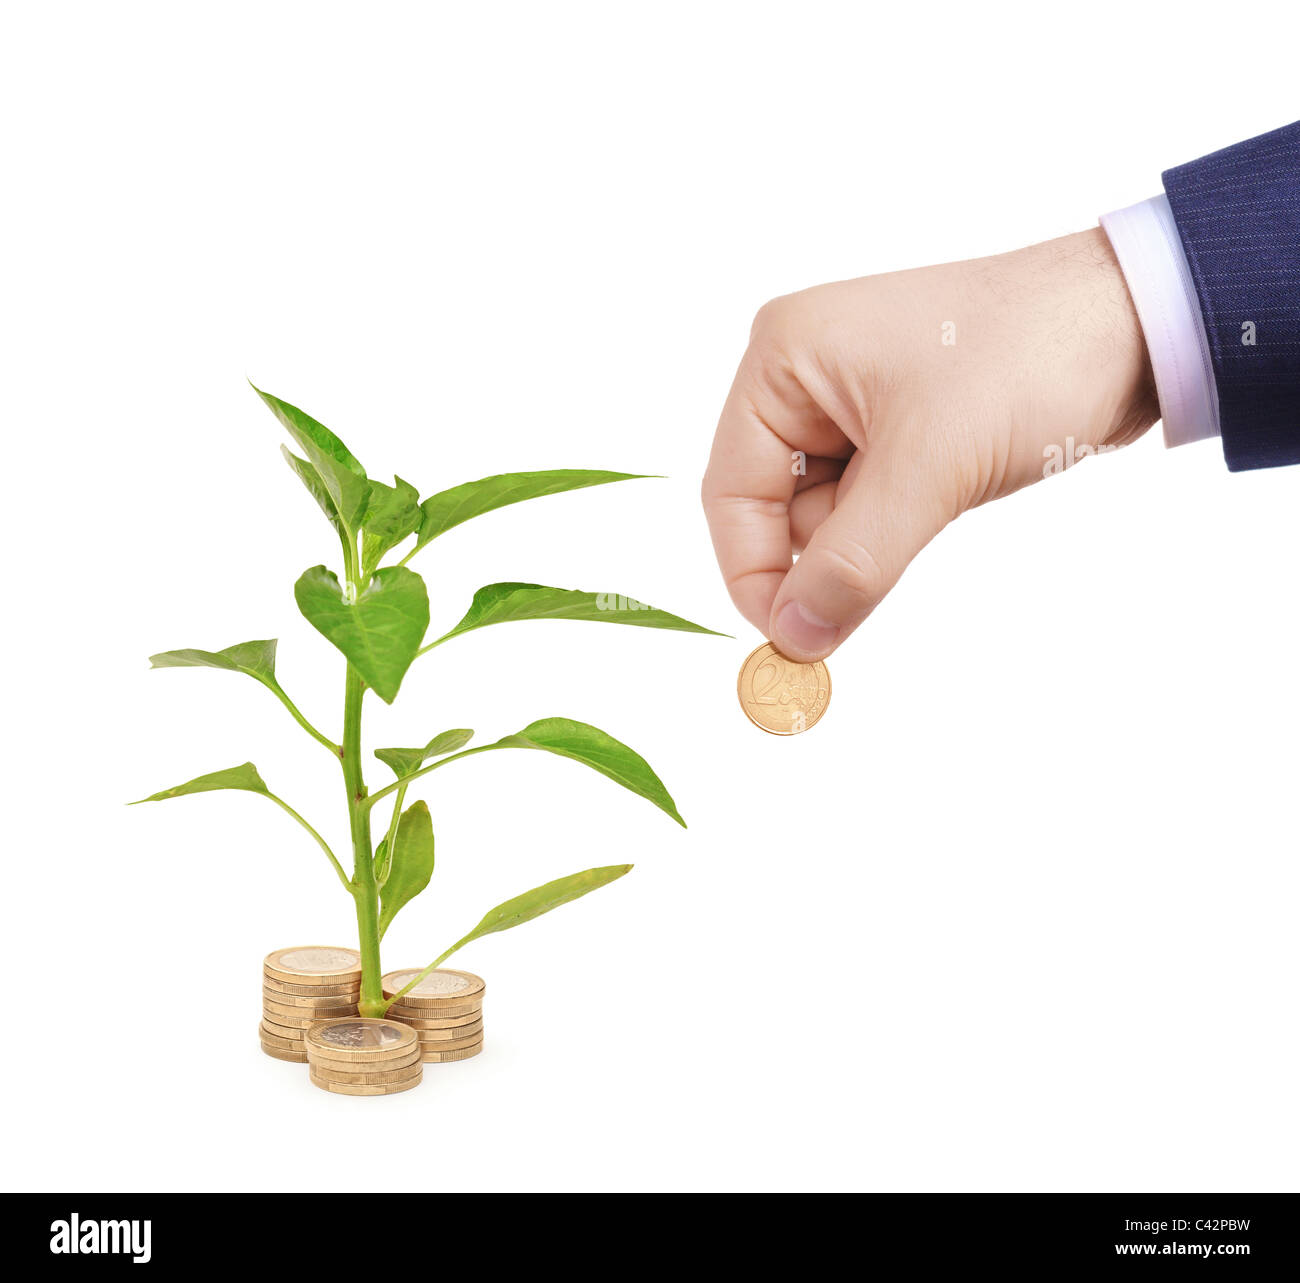 Sapling growing from pile of coins and hand holding a coin - Stock Image